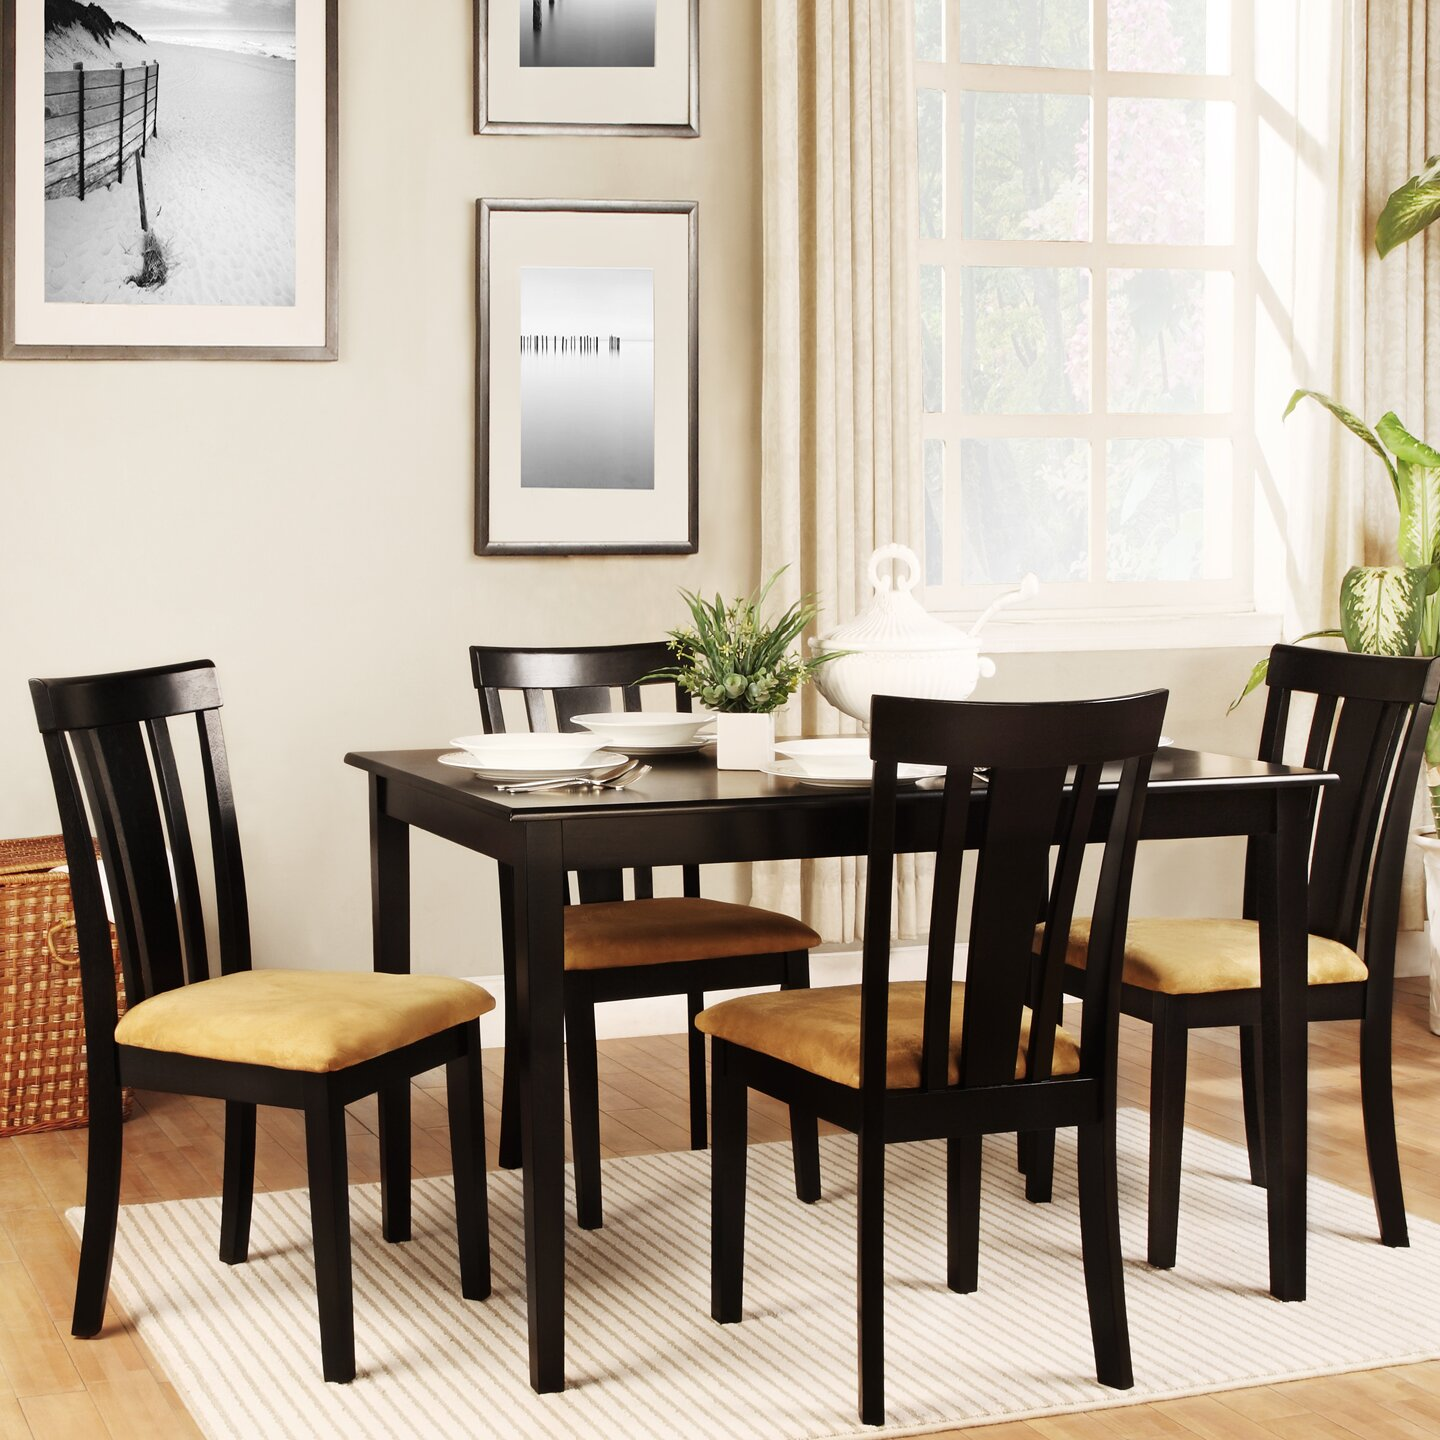 5 Piece Dining Room Sets Amazon Com: Kingstown Home Jeannette 5 Piece Dining Set & Reviews